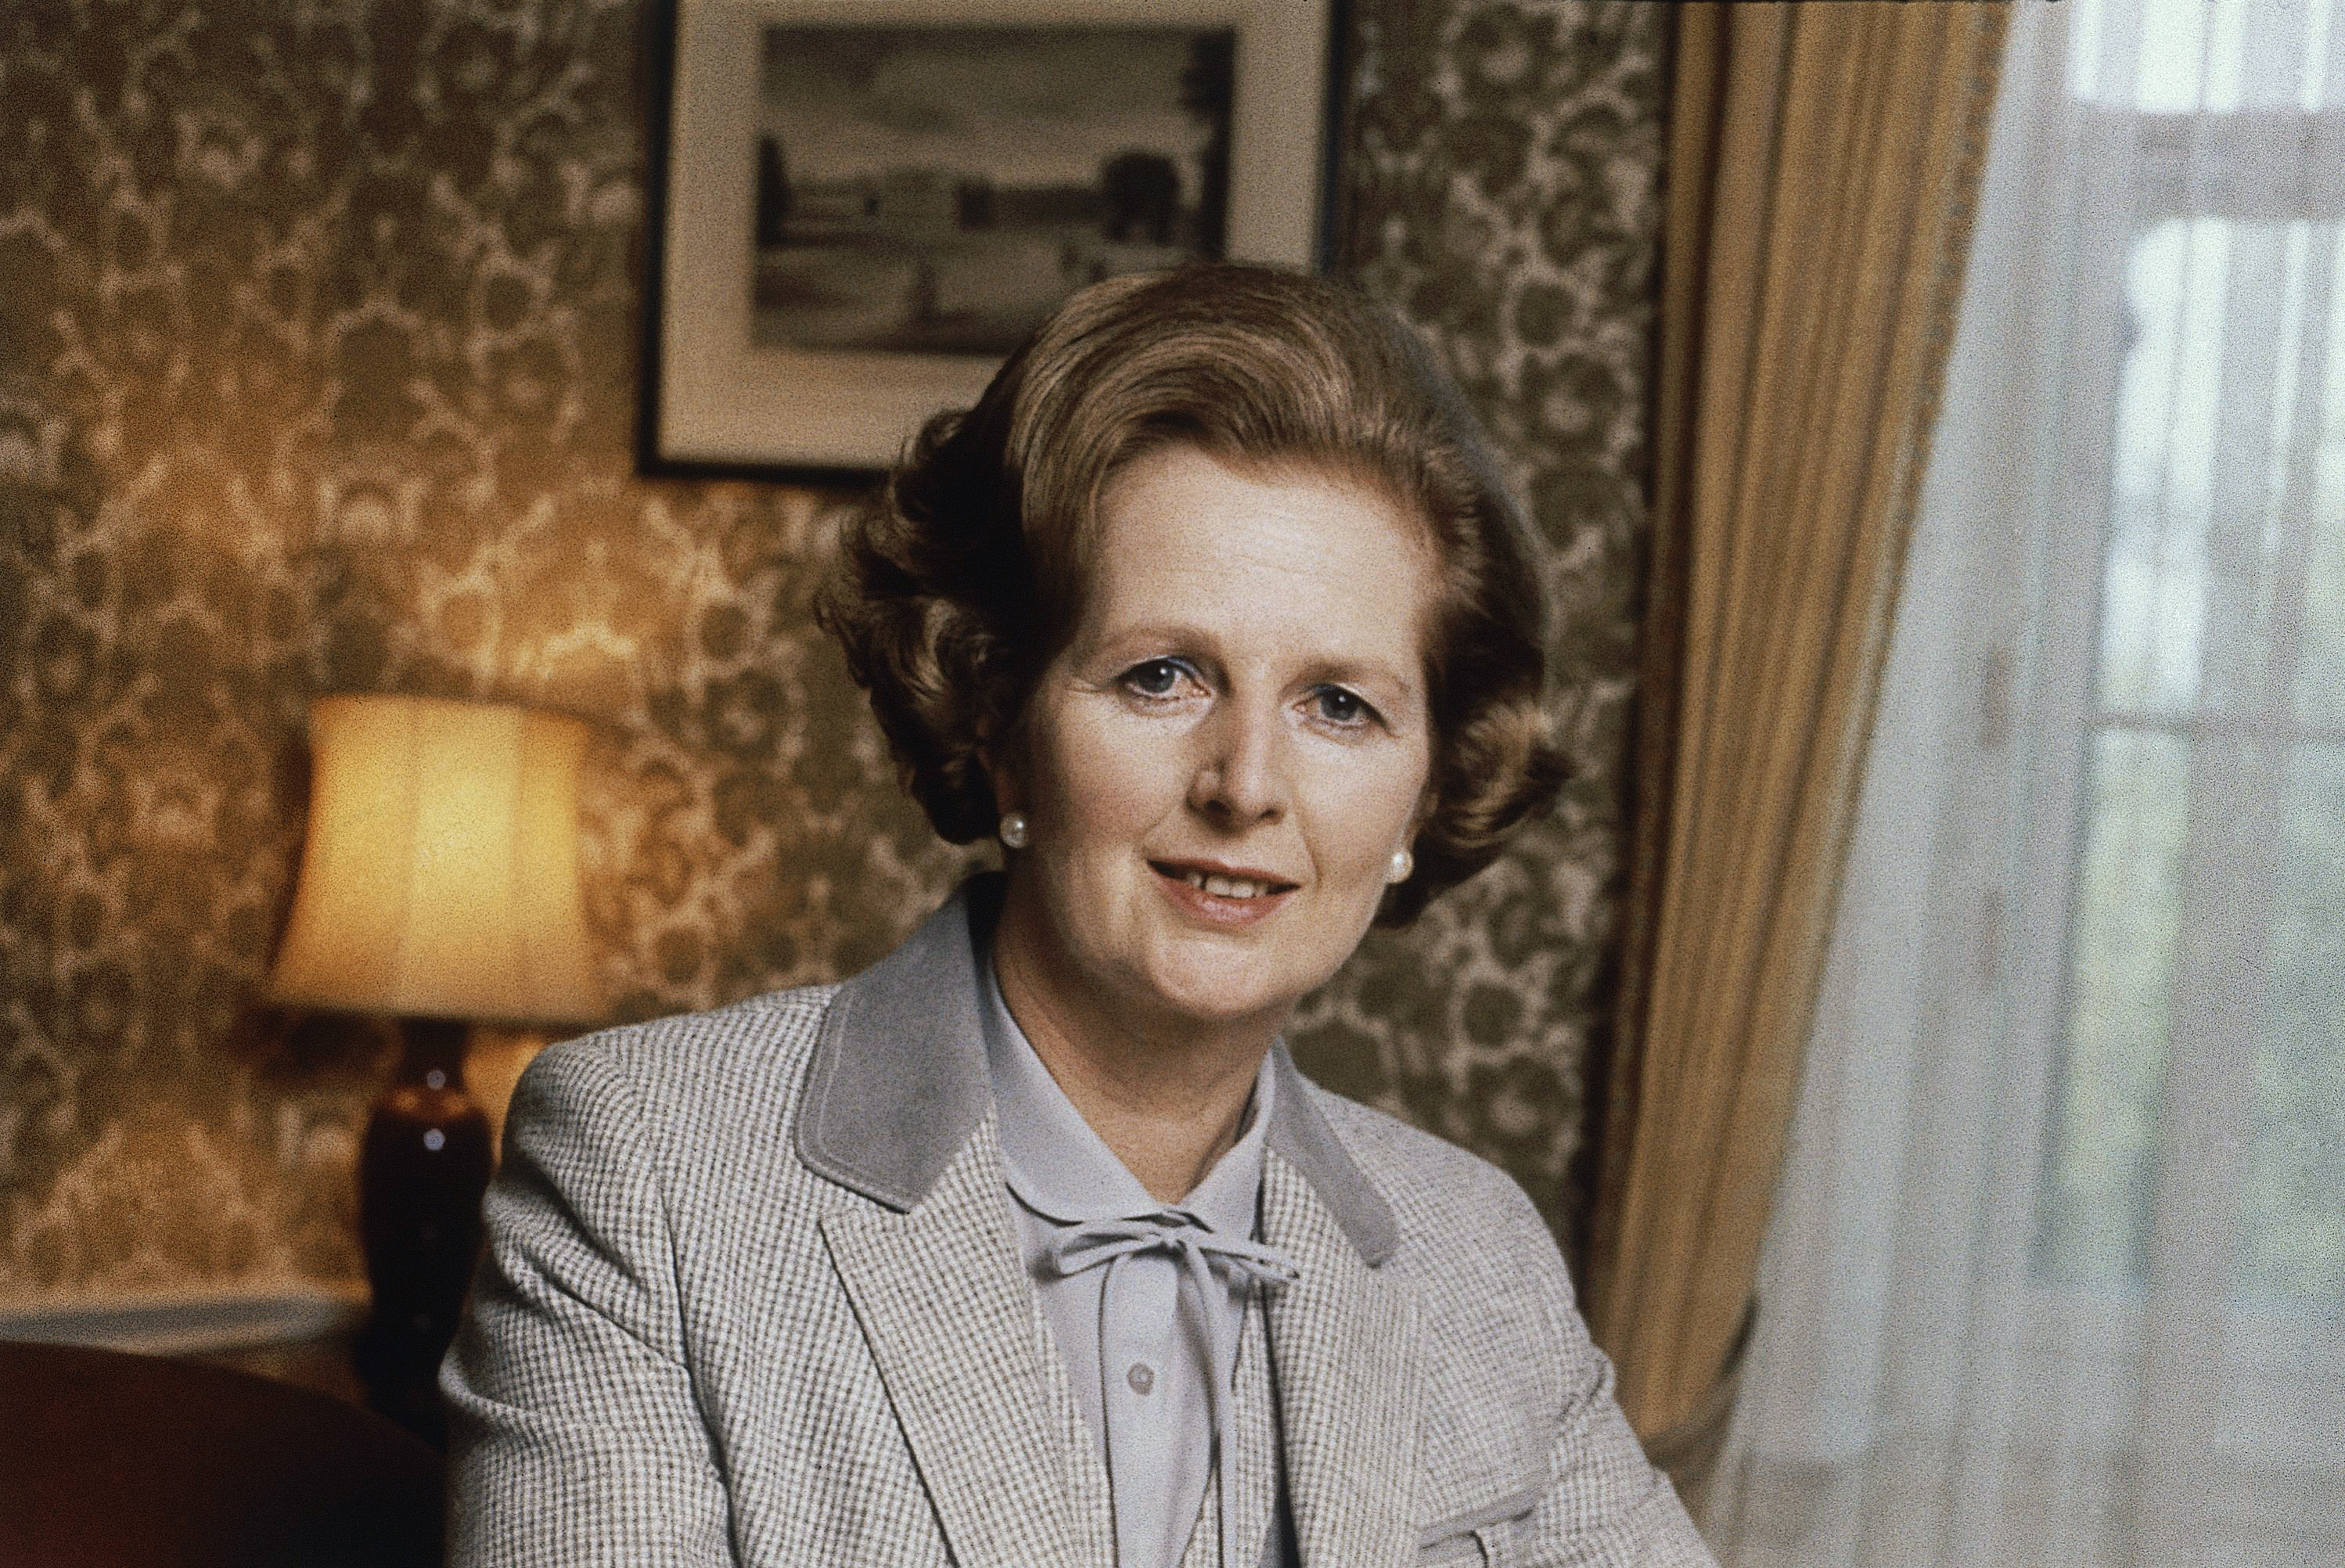 This is a 1980 file photo showing  British Prime Minister Margaret Thatcher.